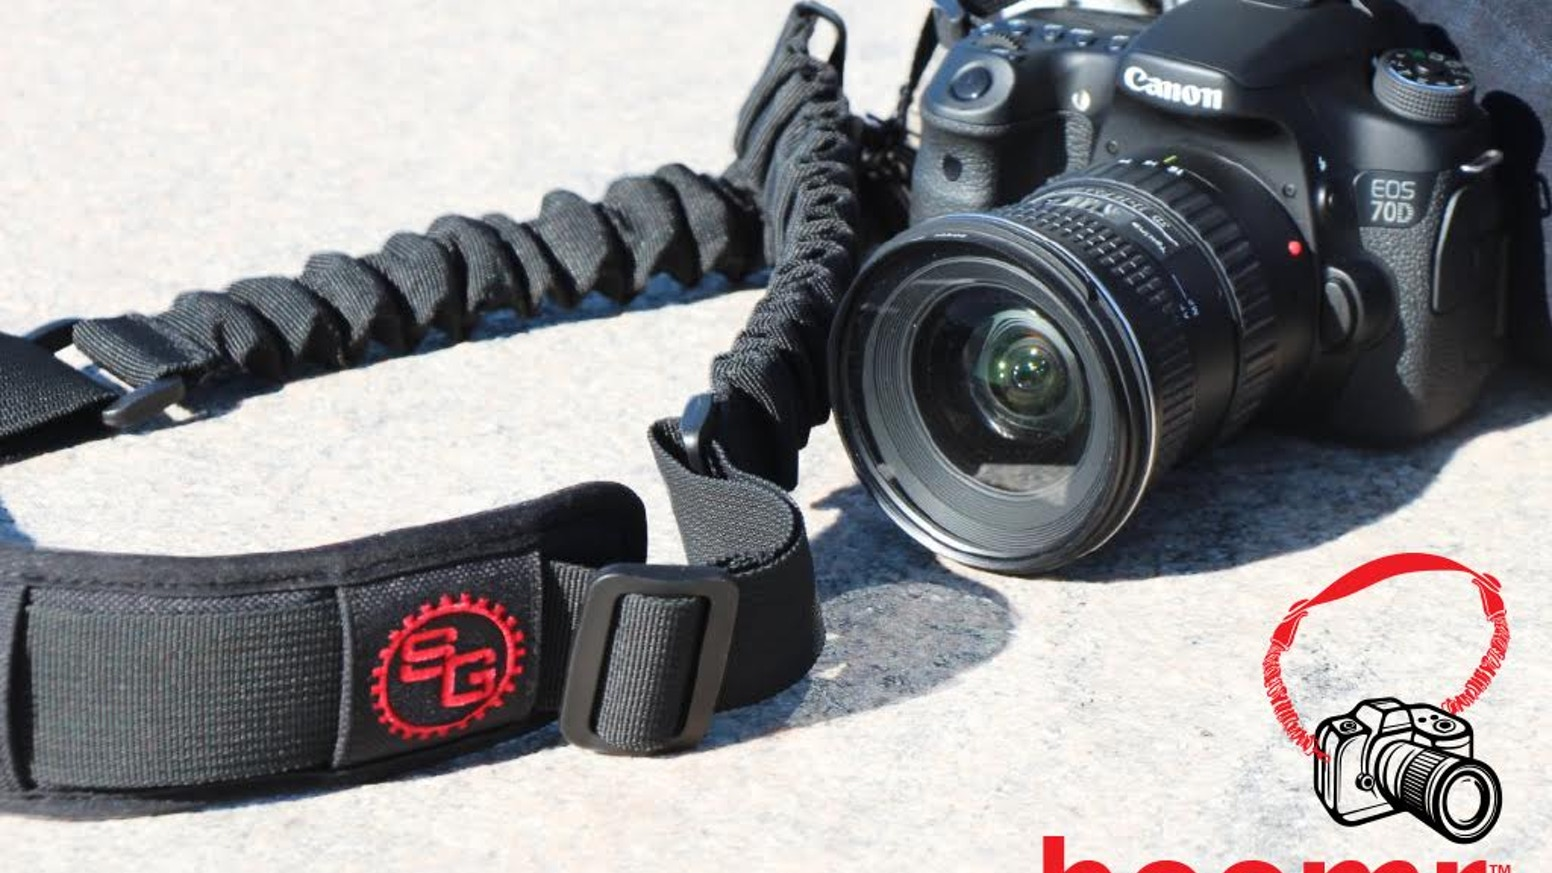 A groundbreaking new design in camera straps/slings designed with an internal bungee cord system making the Boomr the most comfortable camera strap EVER!